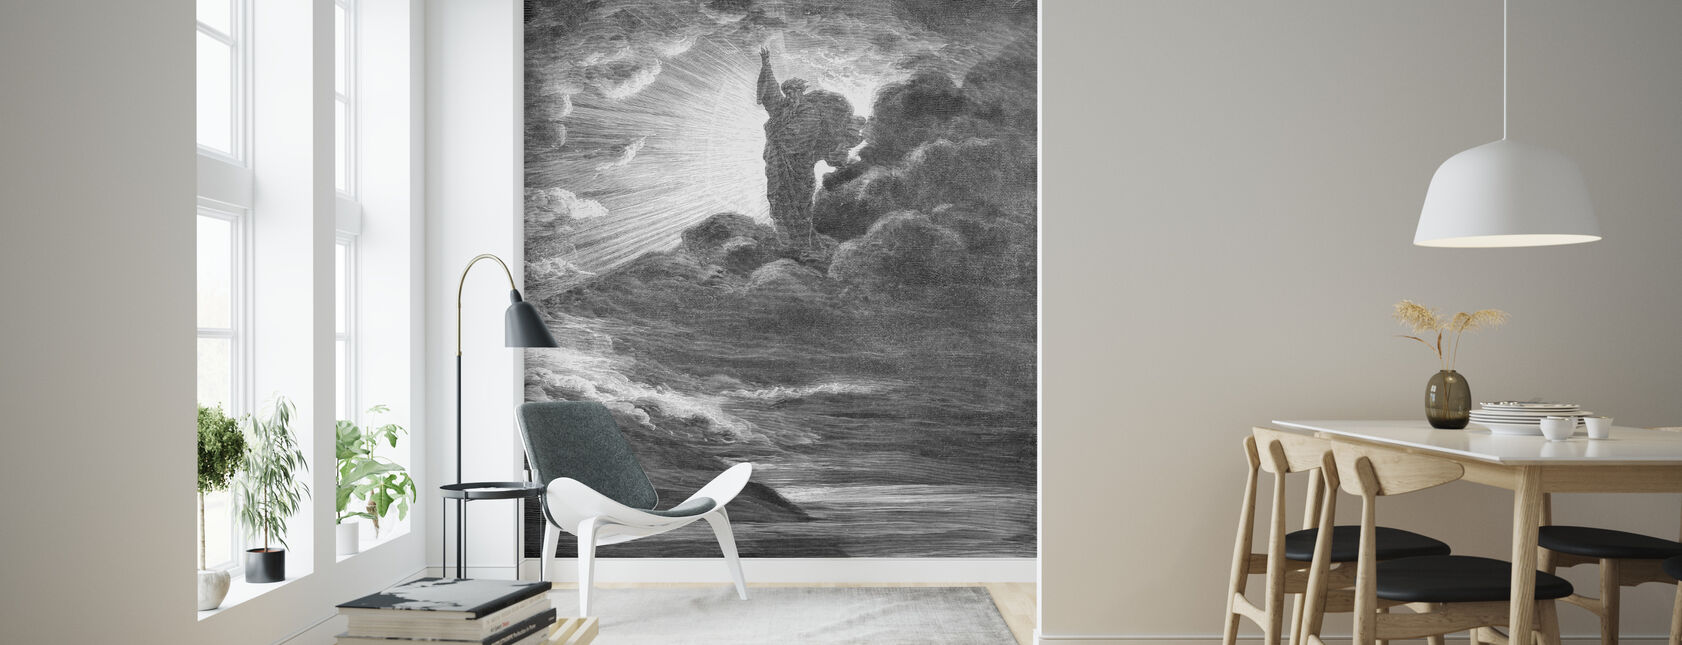 Skapelsen - Gustave Dore - Wallpaper - Living Room